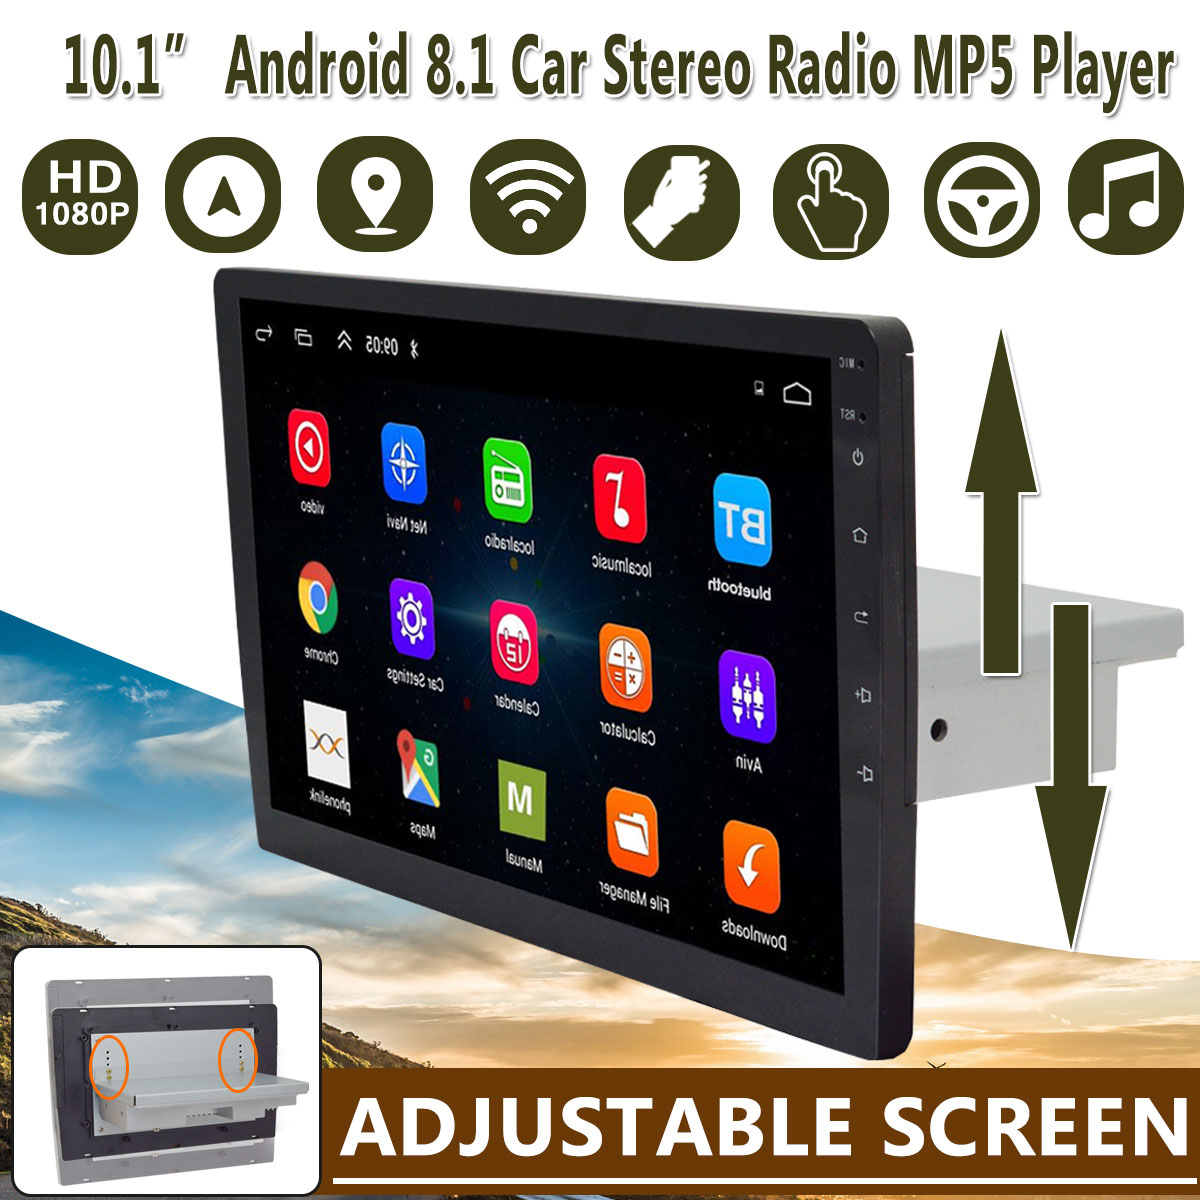 1G+16G Car Stereo Radio Player Android 8.1 Multimedia With Up Down Adjustable Screen Rotatable WIFI Bluetooth Player Universal